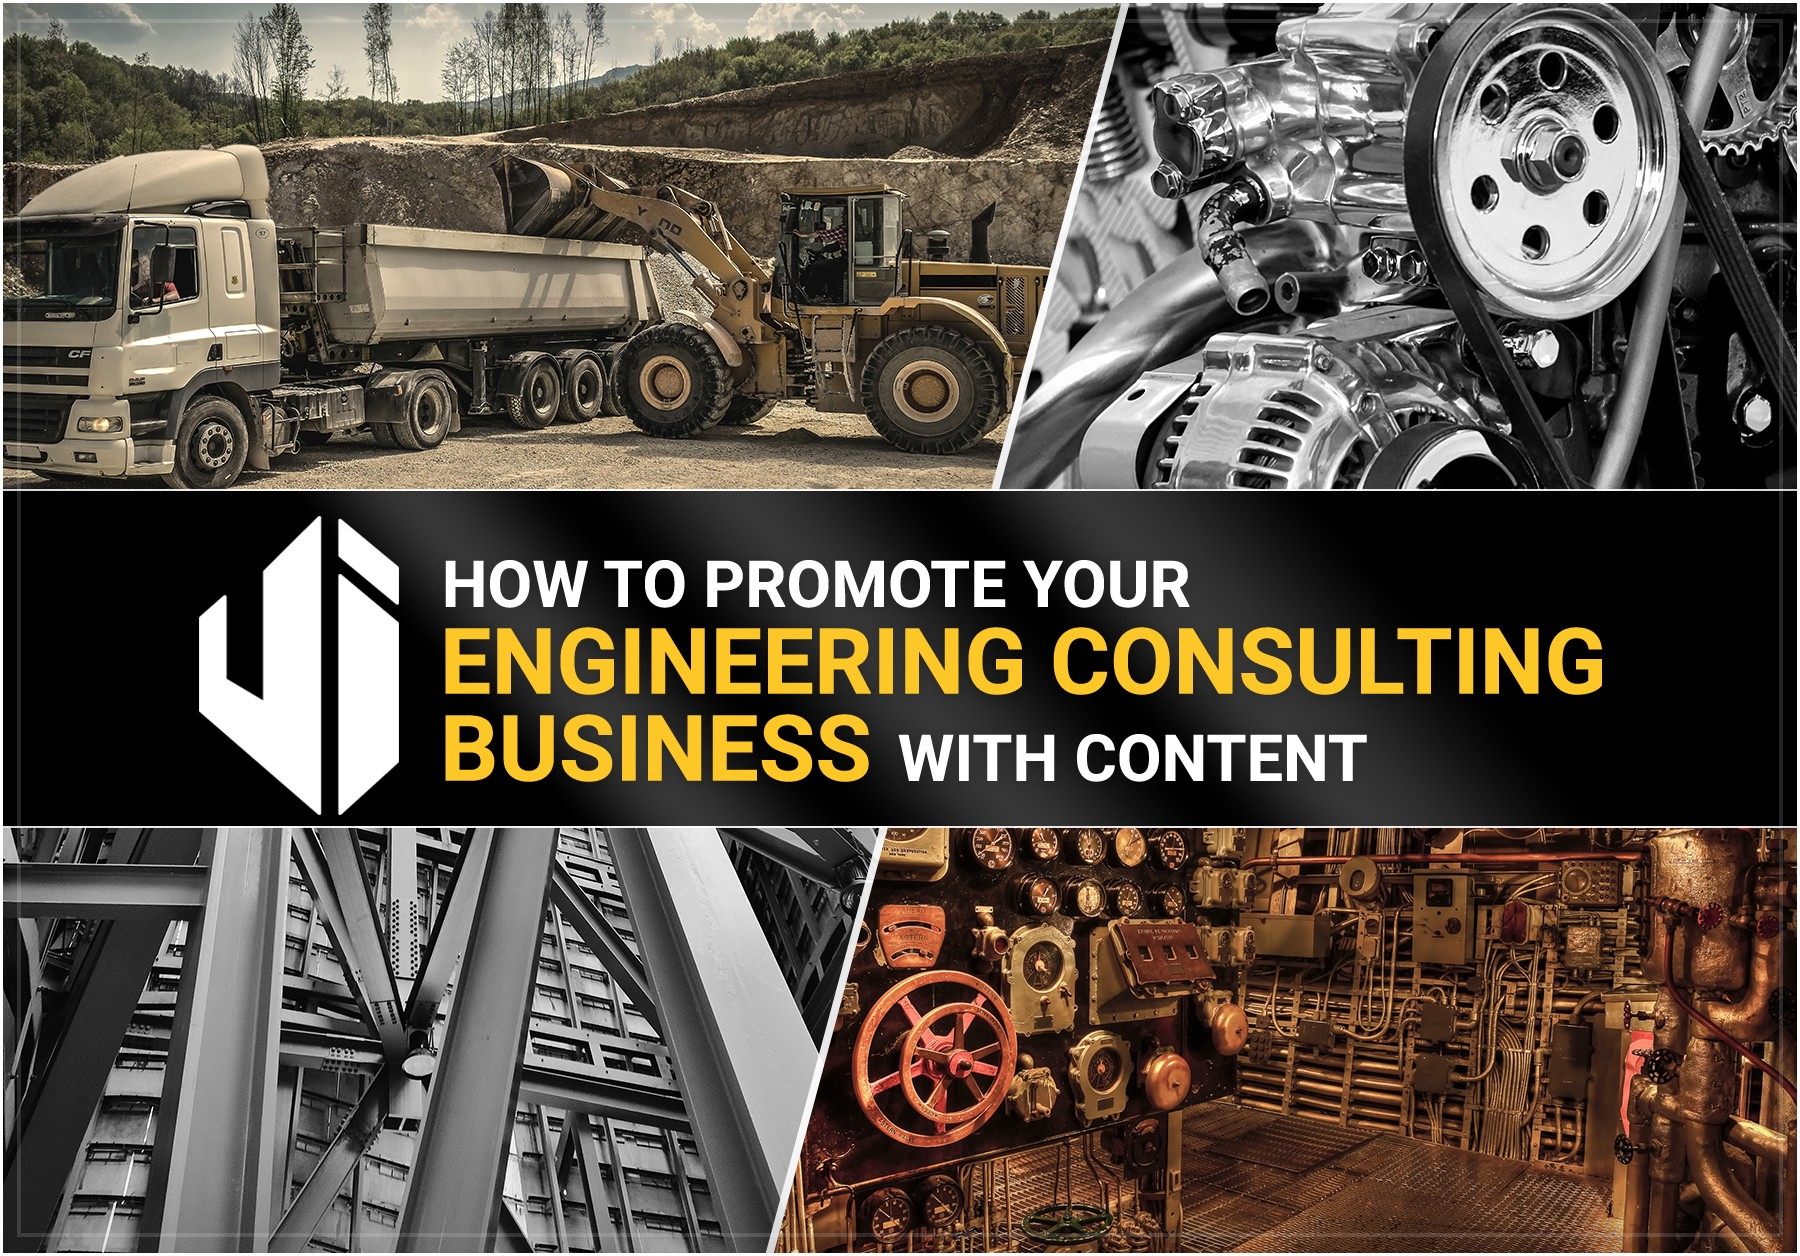 How to promote your engineering consulting business with